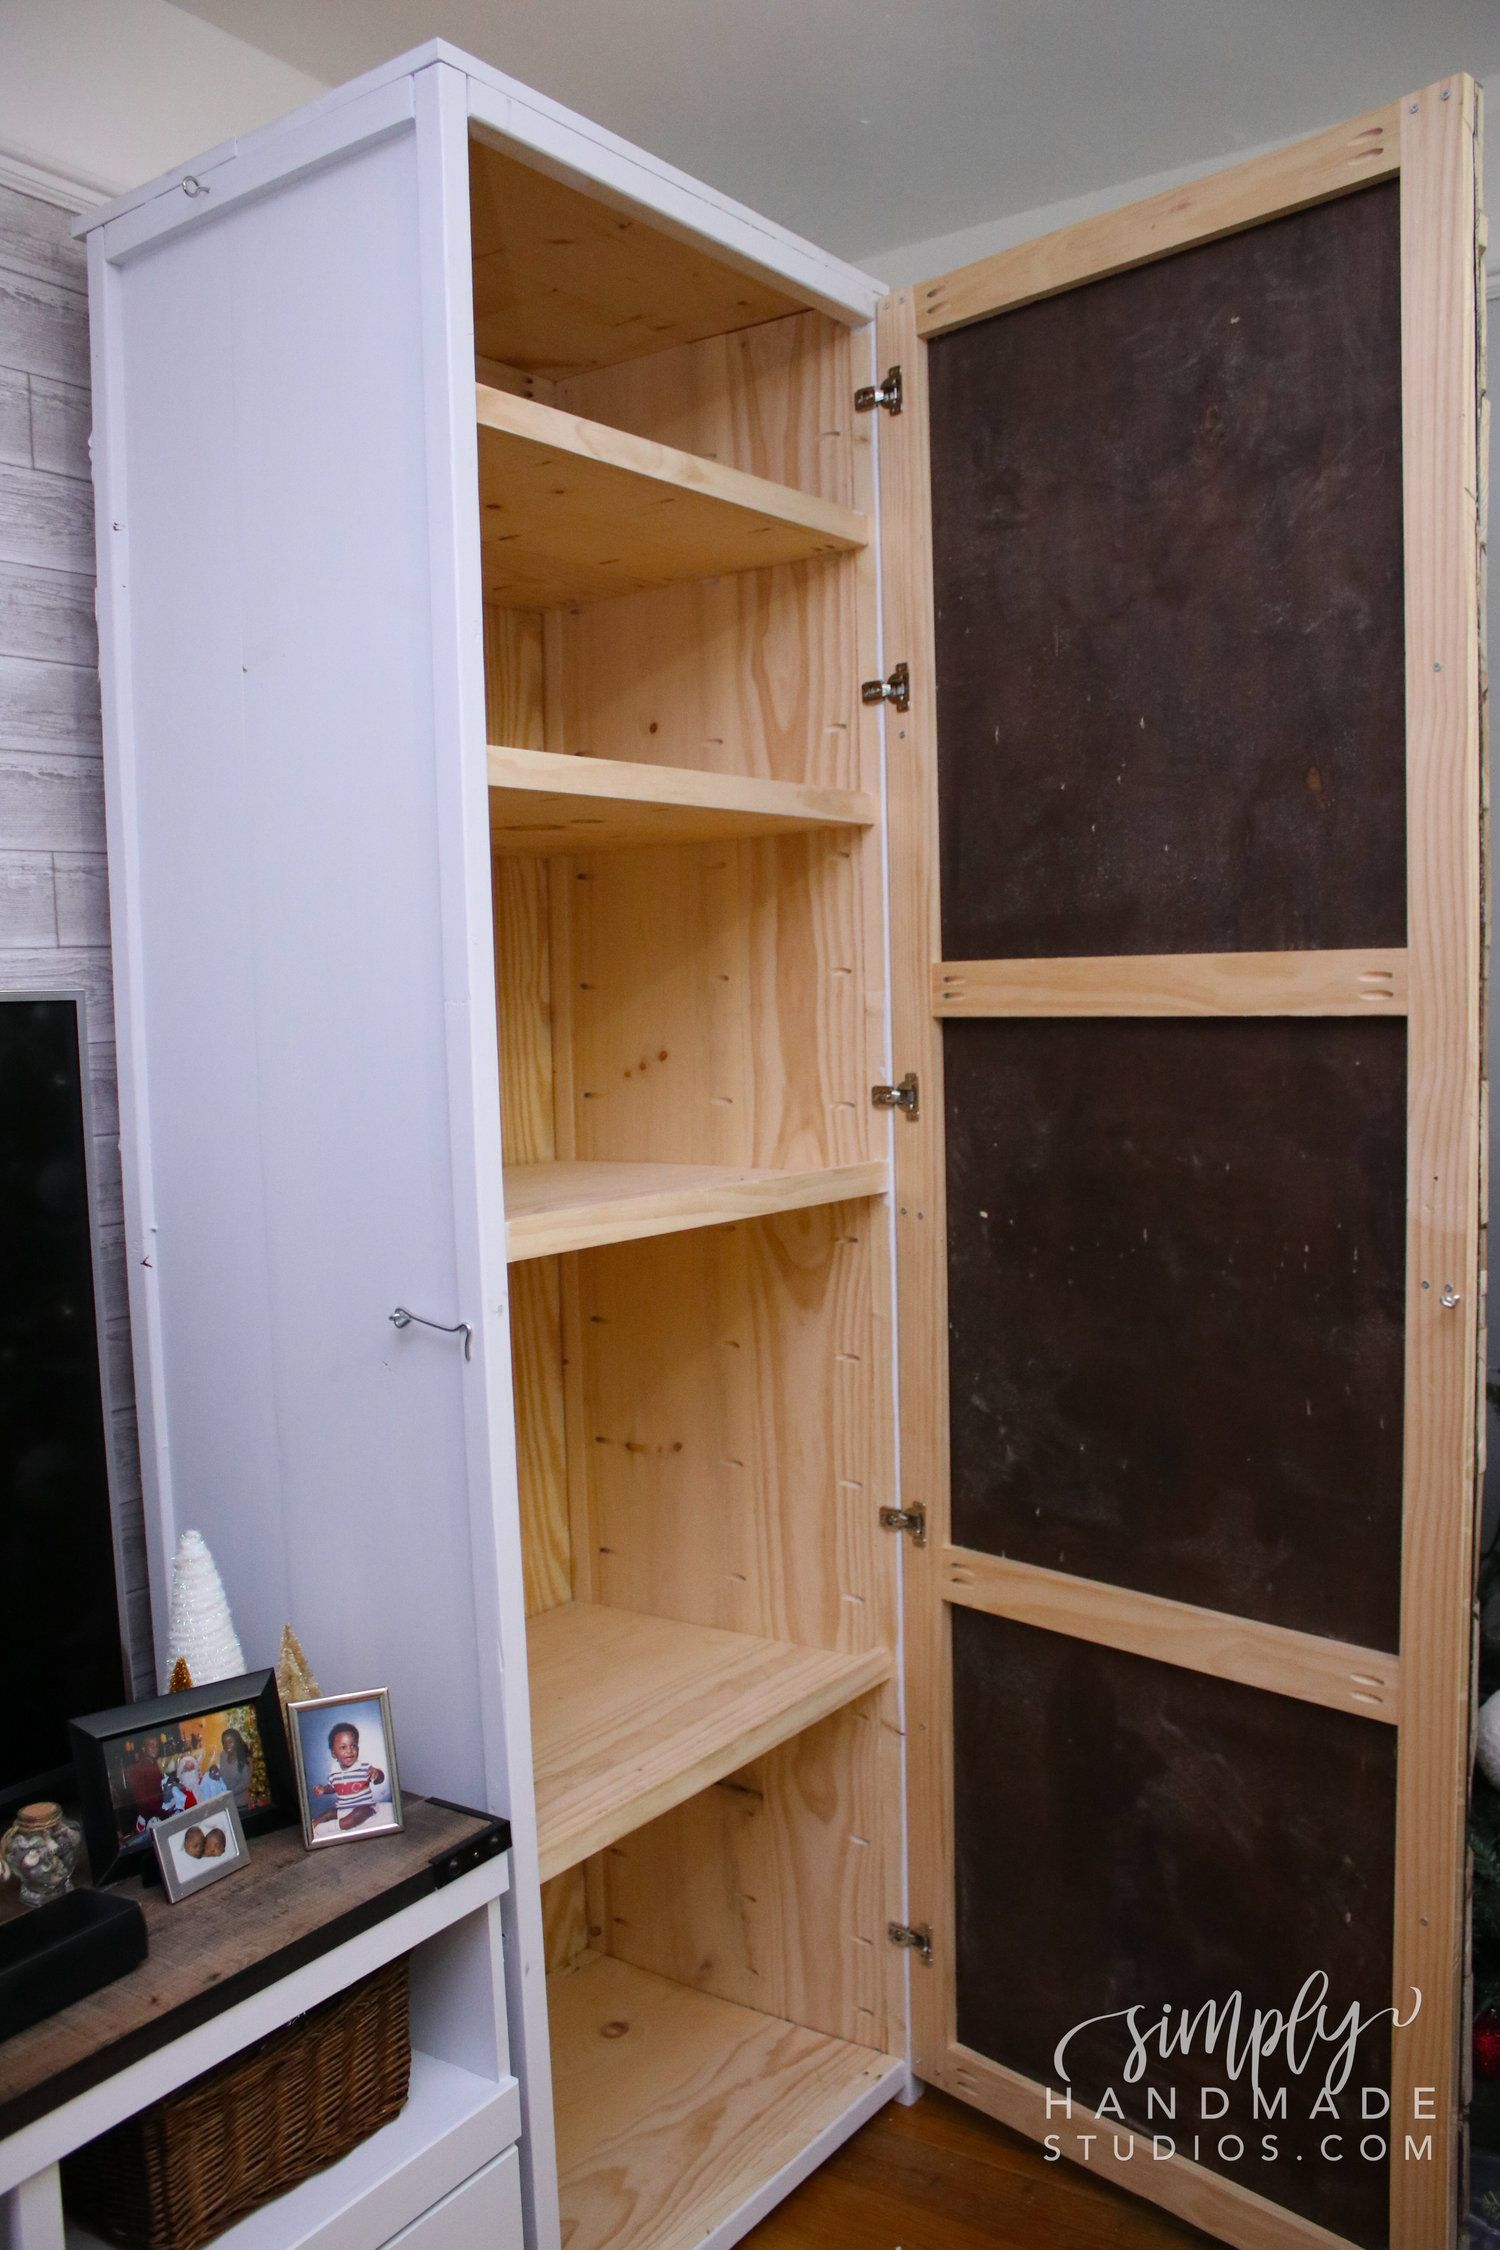 How To Build A Storage Cabinet In 9 Steps Simply Handmade Studios Diy Storage Cabinets Wood Storage Cabinets Craft Storage Cabinets